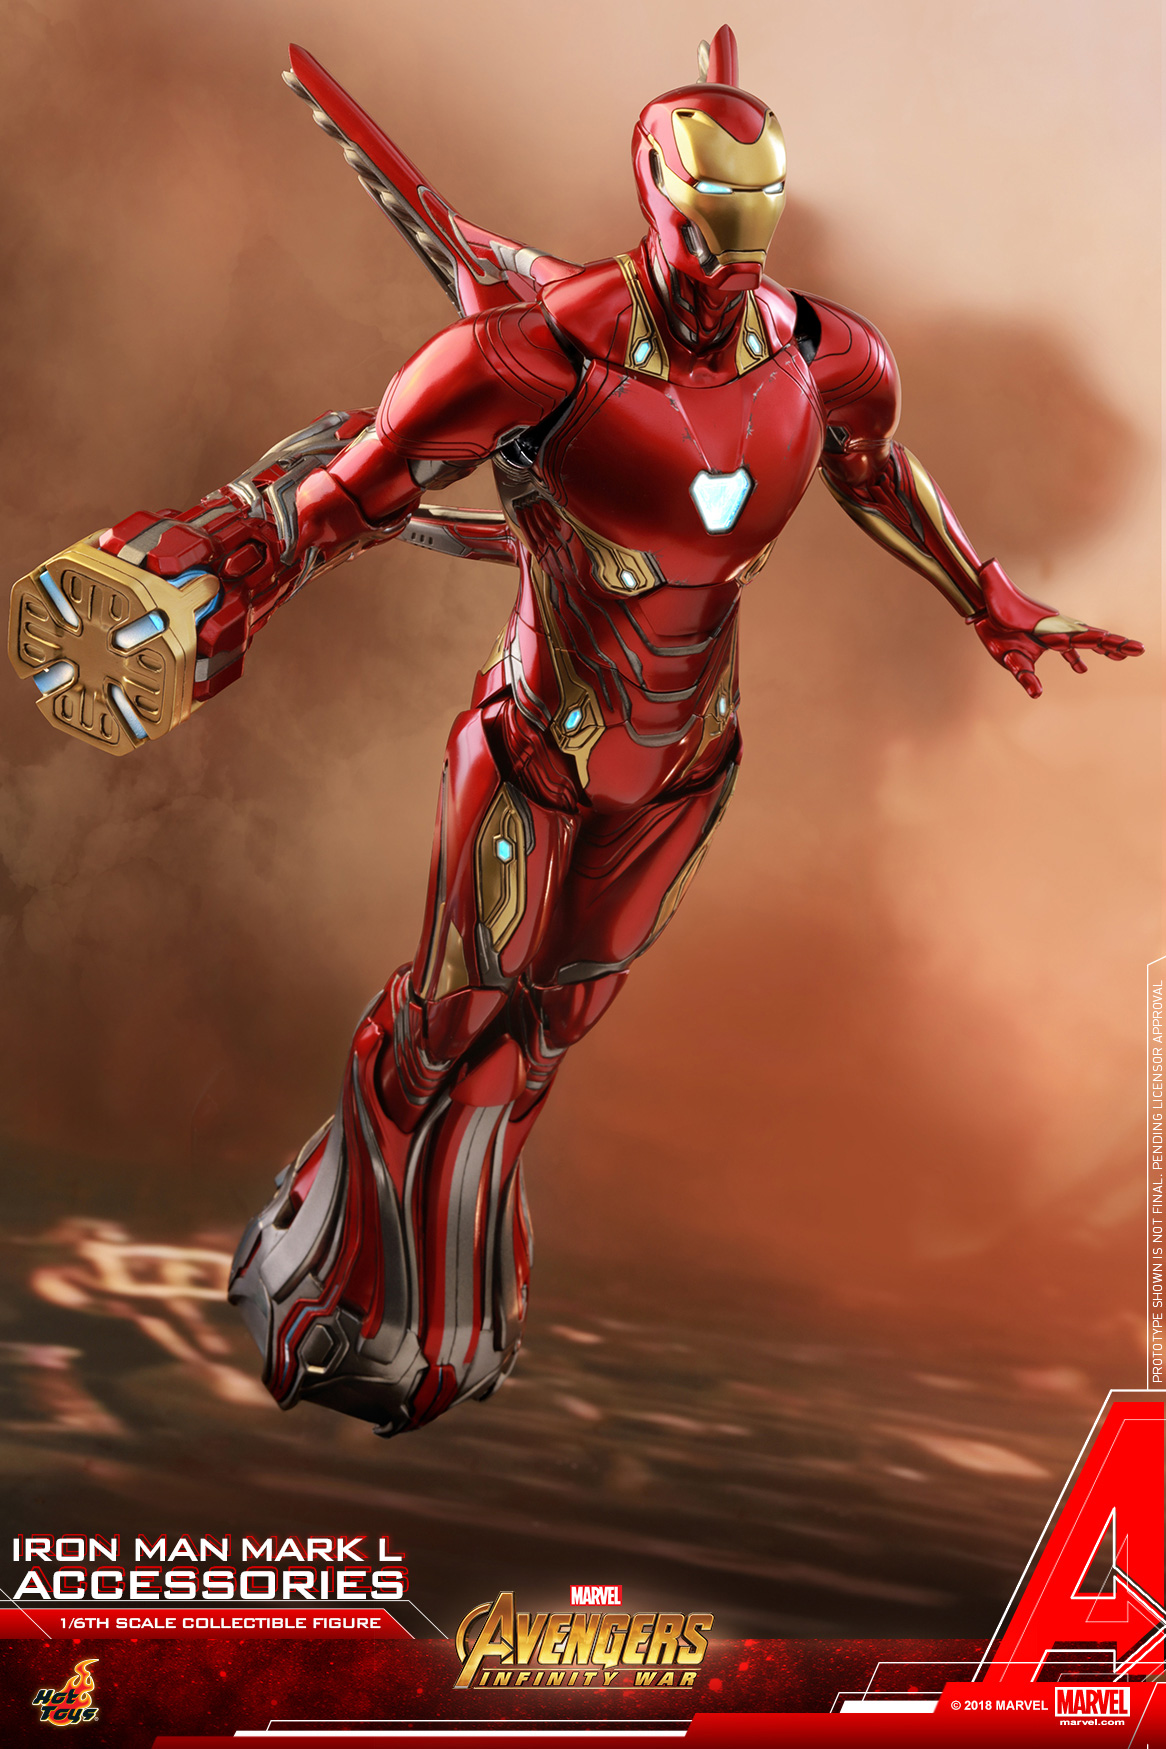 Hot-Toys---Avengers-3---Iron-Man-Mark-L-Accessories-Collectible-Set_PR2